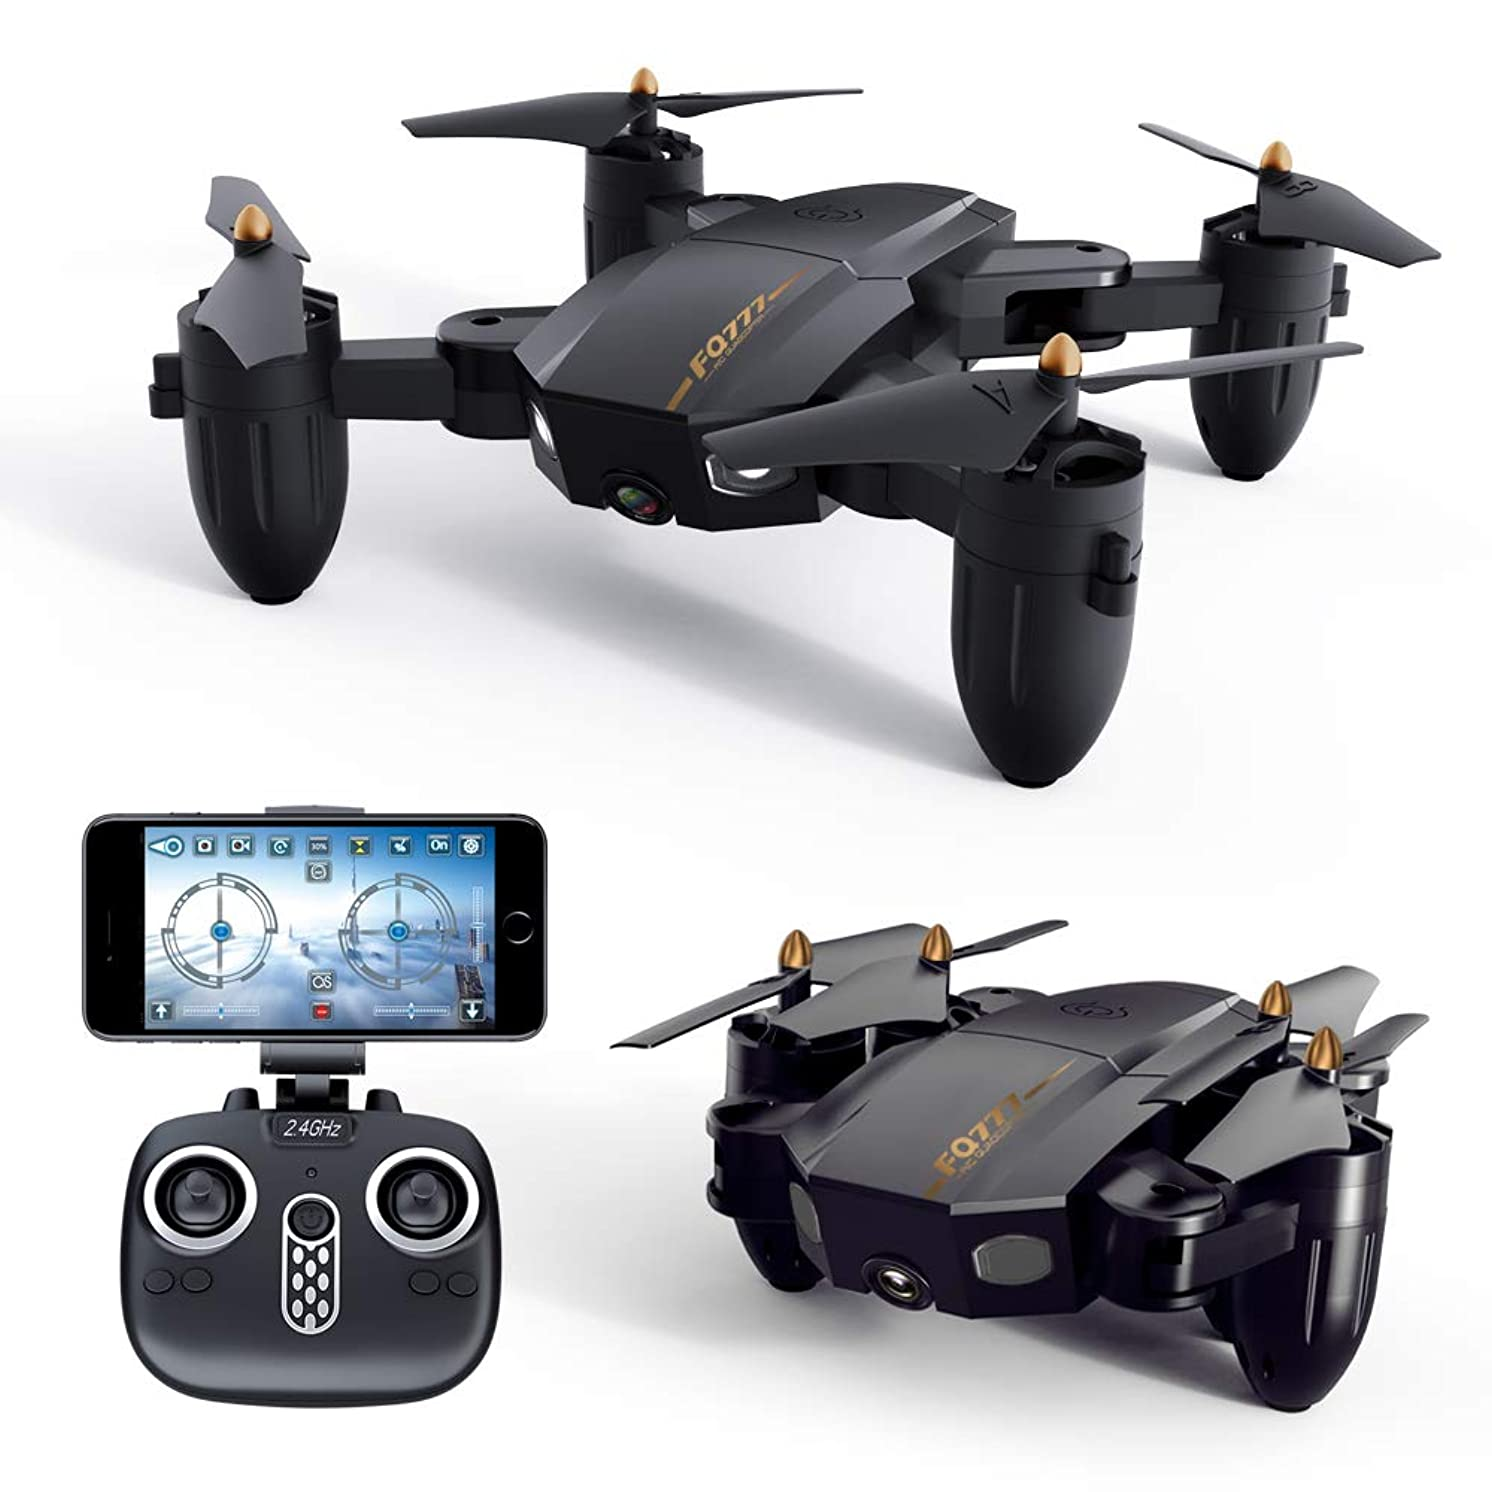 Folding WiFi FPV Drone, 2 Megapixel Camera, Remote Quadcopter with Led Lights, Headless Mode, 3D Flip, One Button Return Aircraft Fun Gift, Black